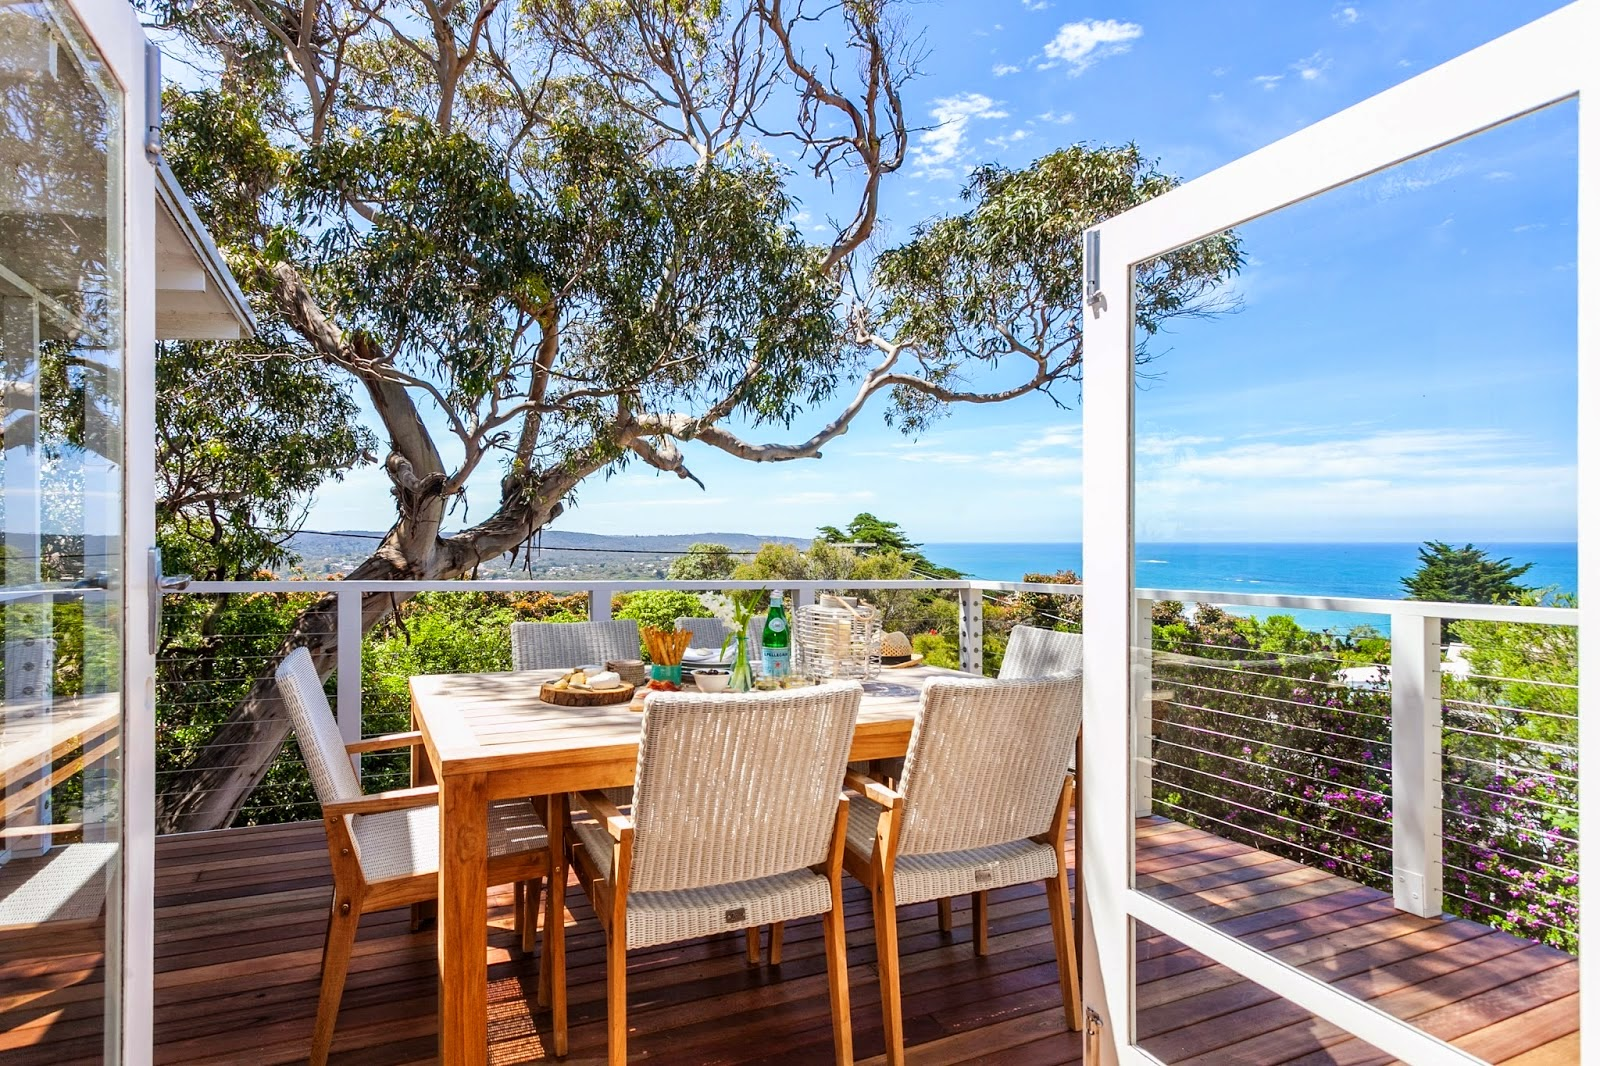 Feature friday: a beach house at angelsea on the great ocean road ...